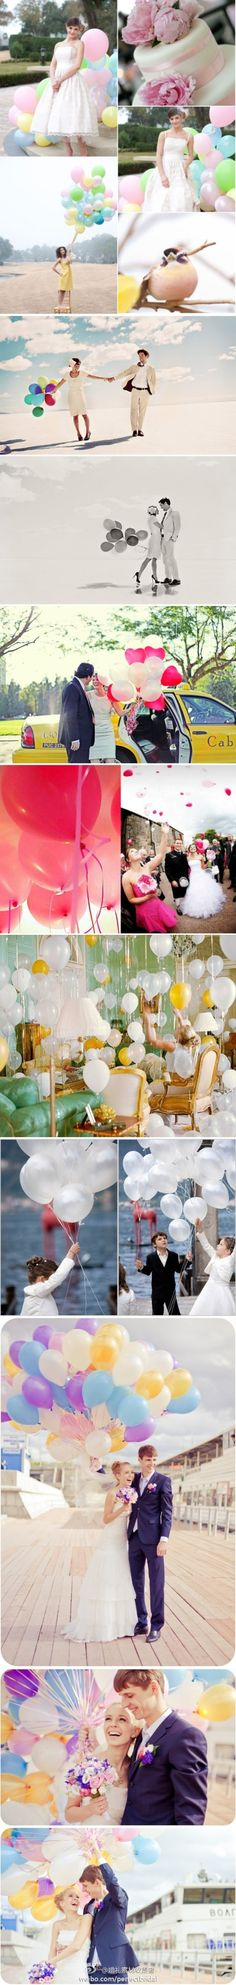 A lot of balloons